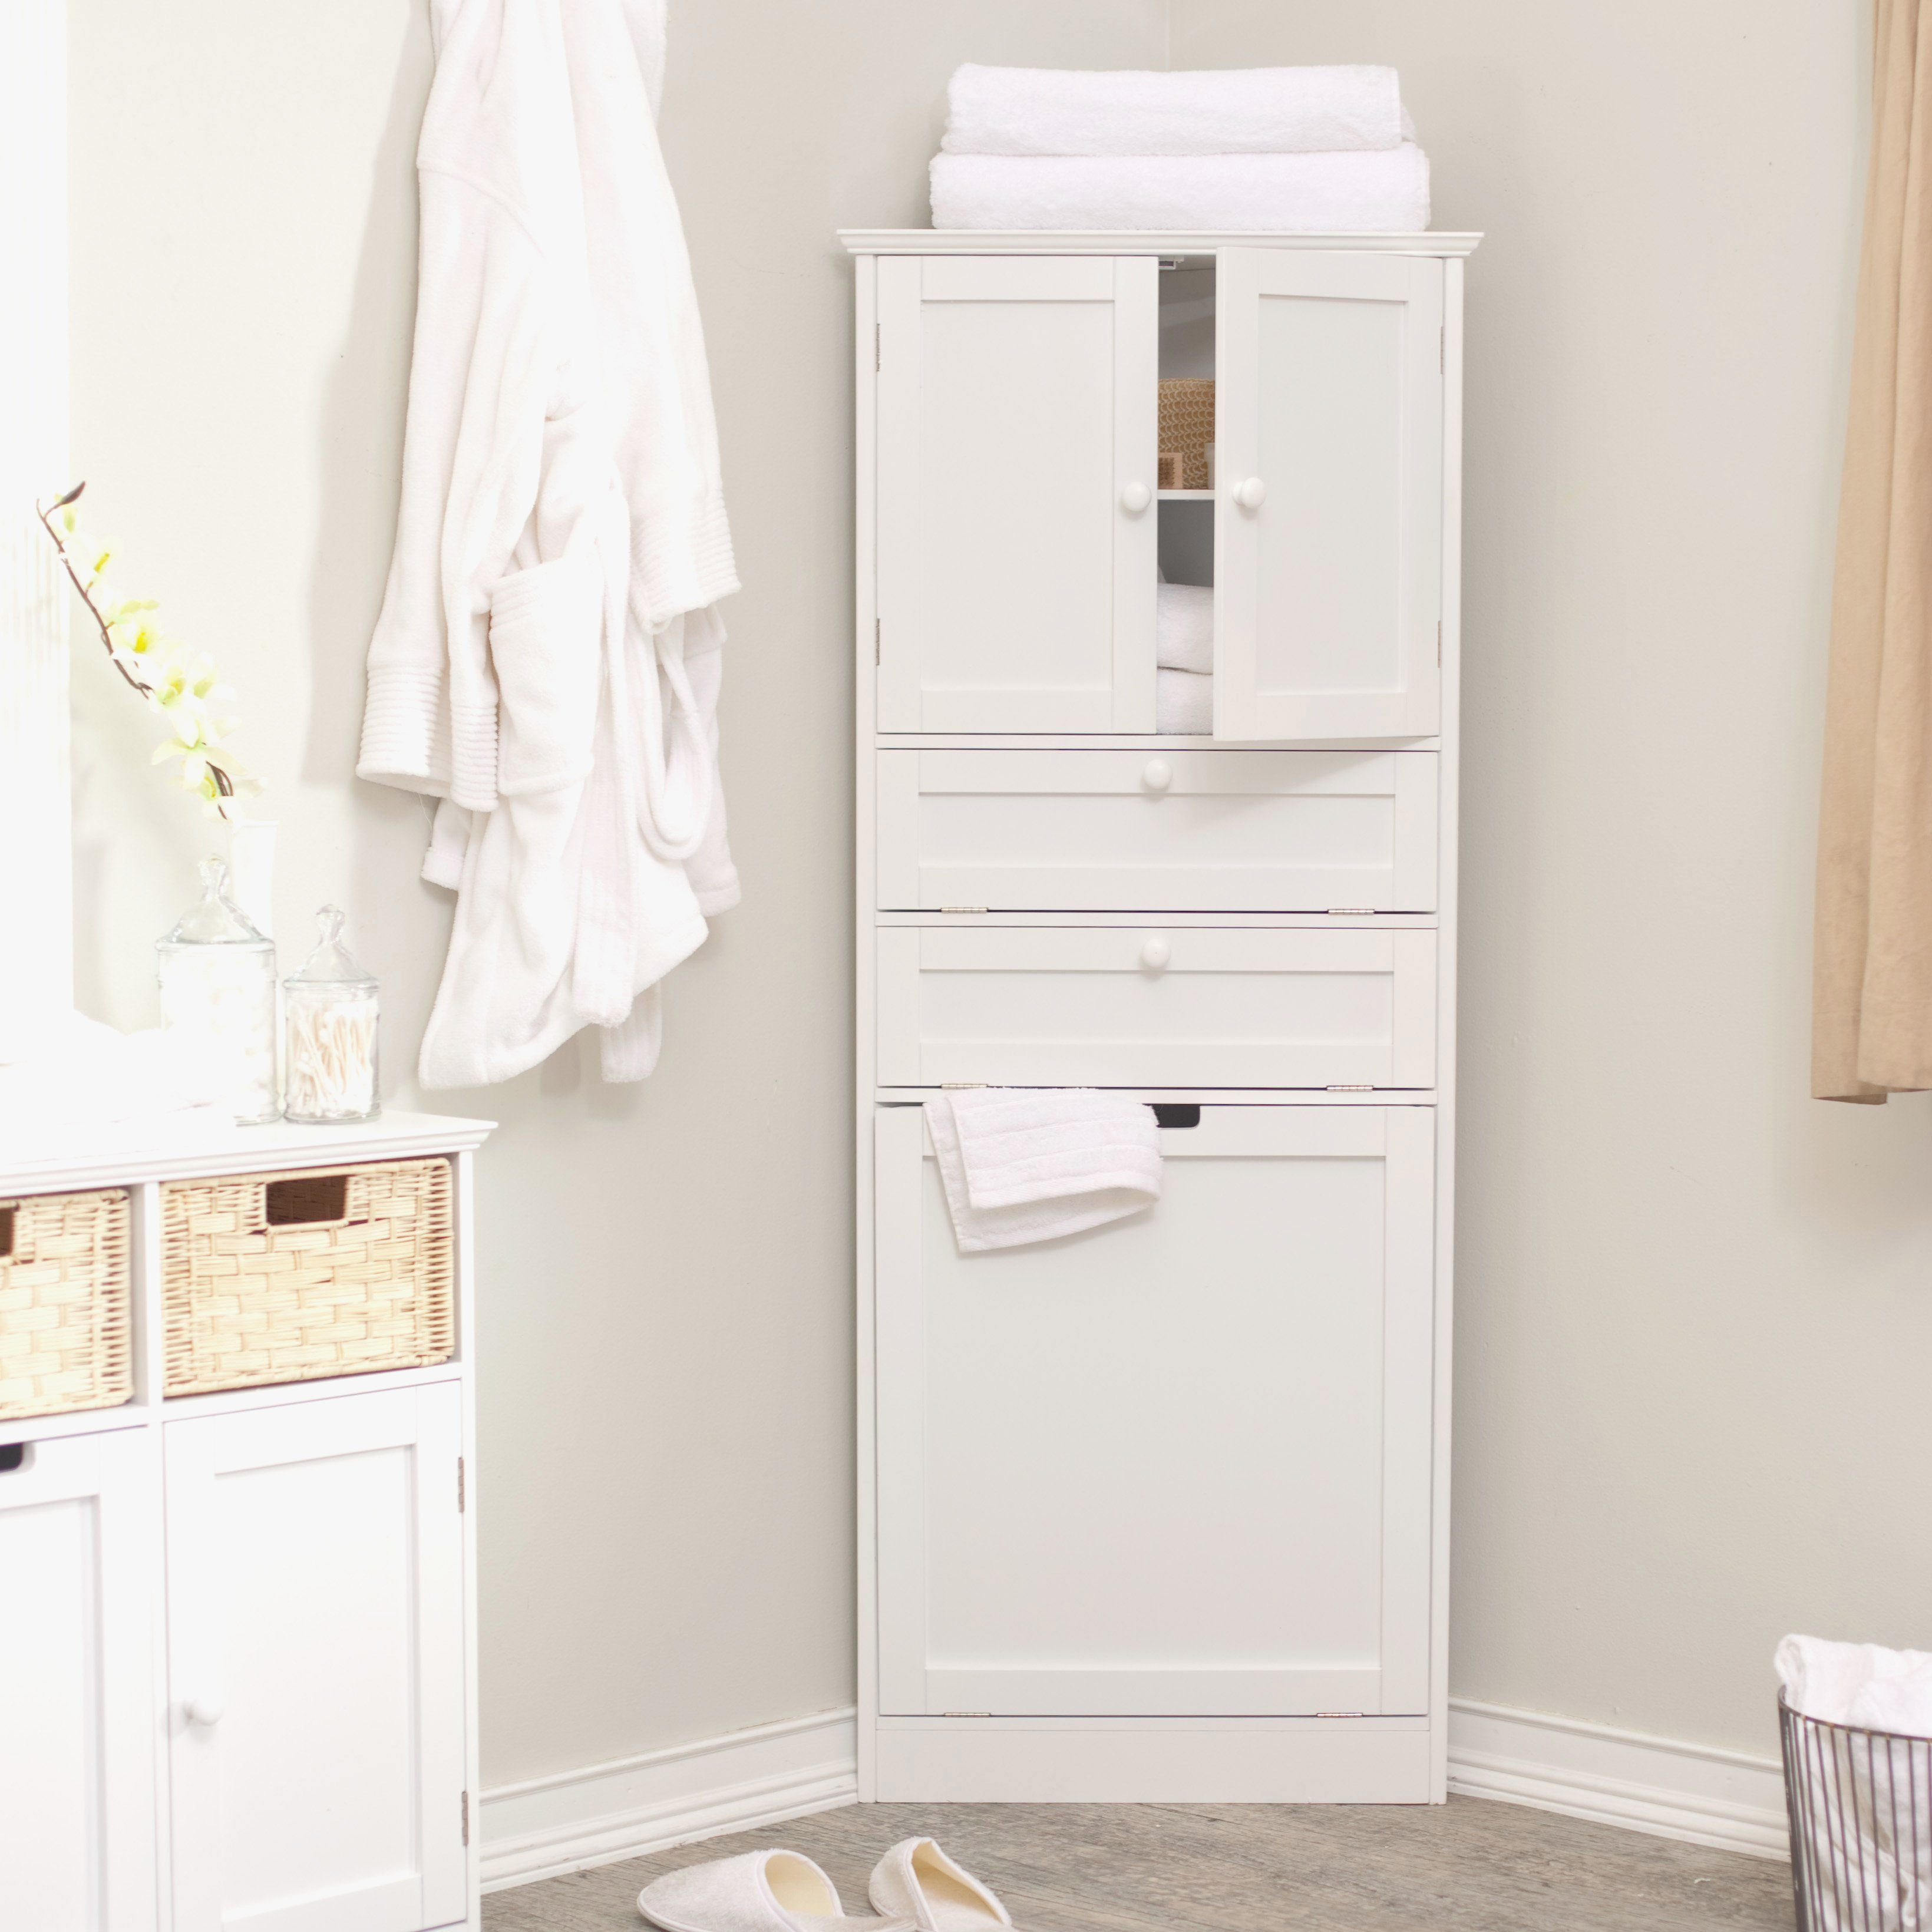 Bathroom Corner Storage Cabinet Modern Bathroom Corner inside proportions 3279 X 3279